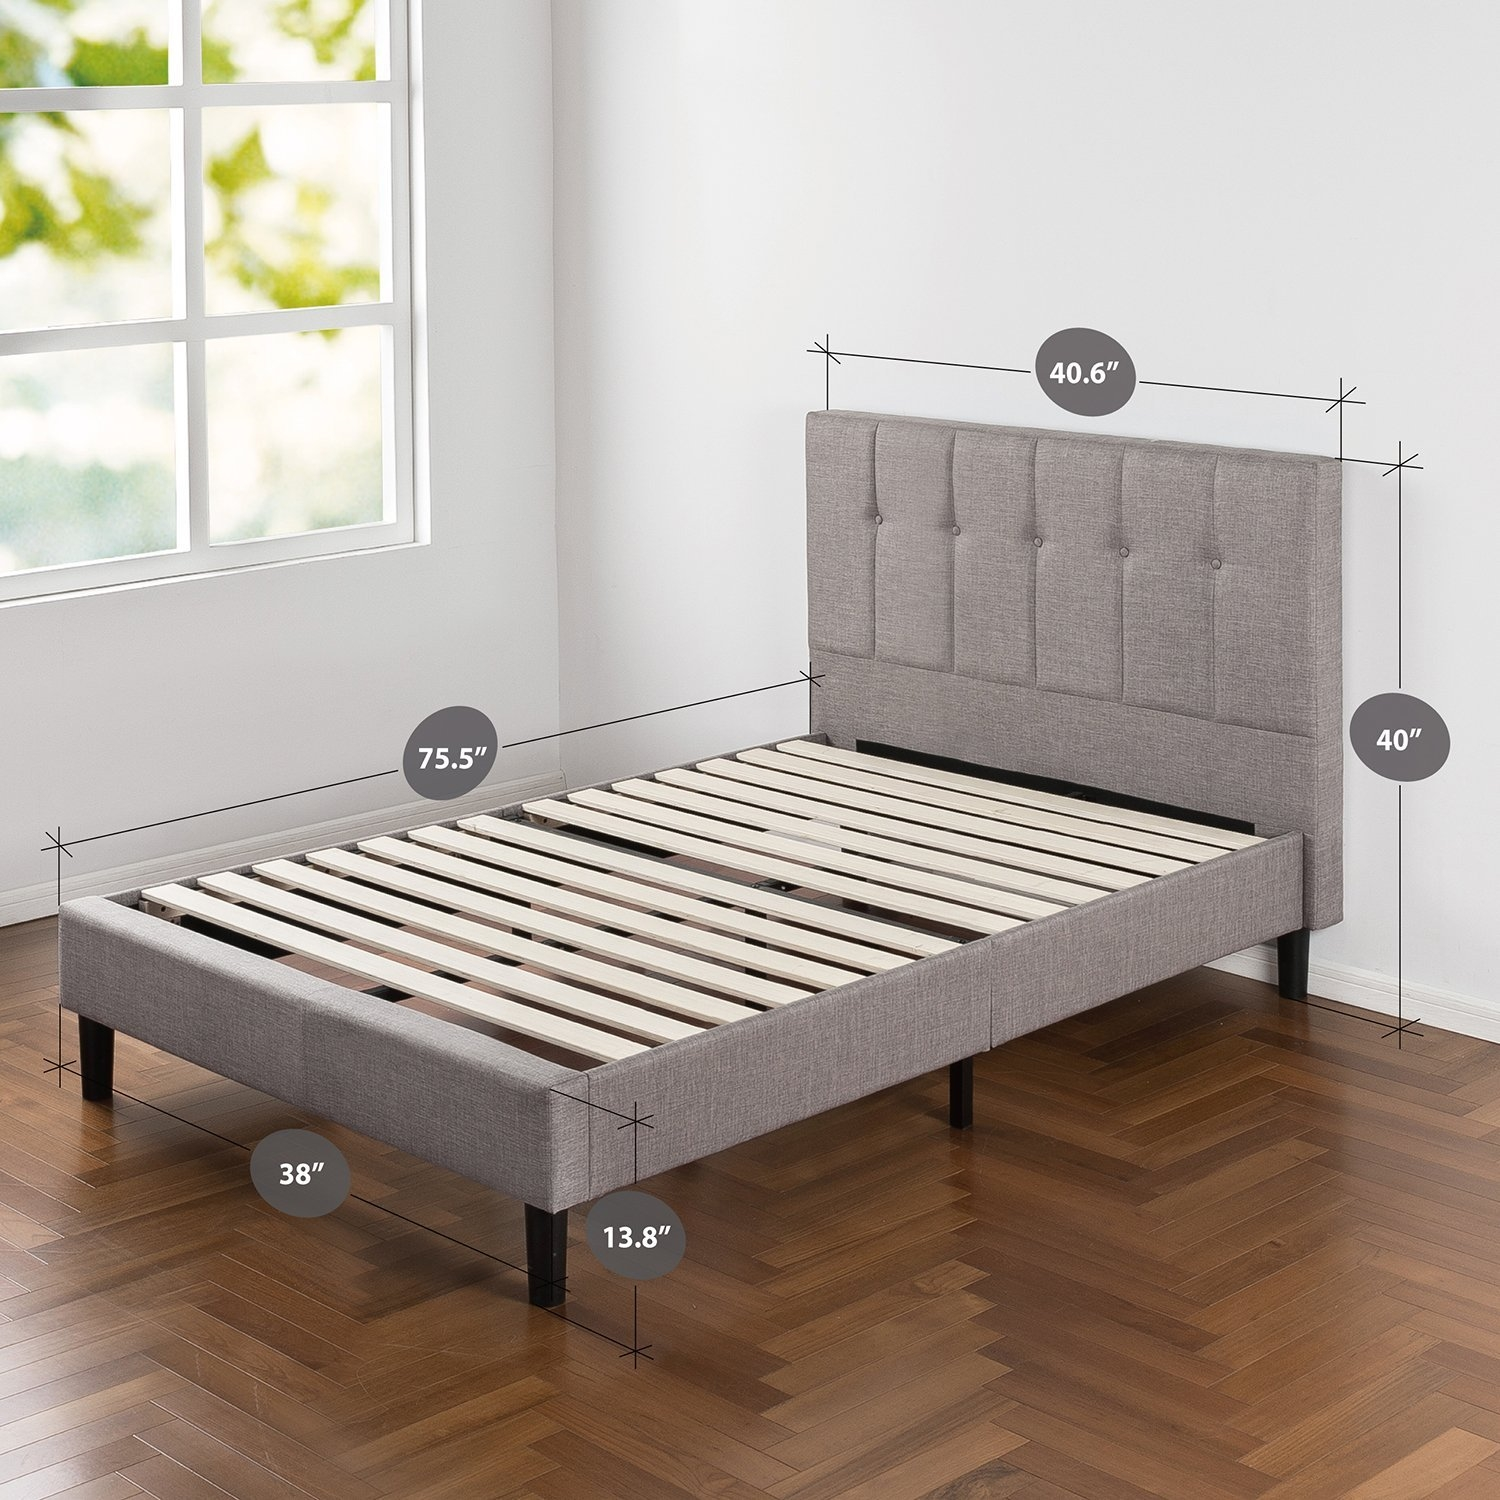 Picture of: Twin Medium Grey Upholstered Platform Bed Frame With Button Tufted Headboard Fastfurnishings Com